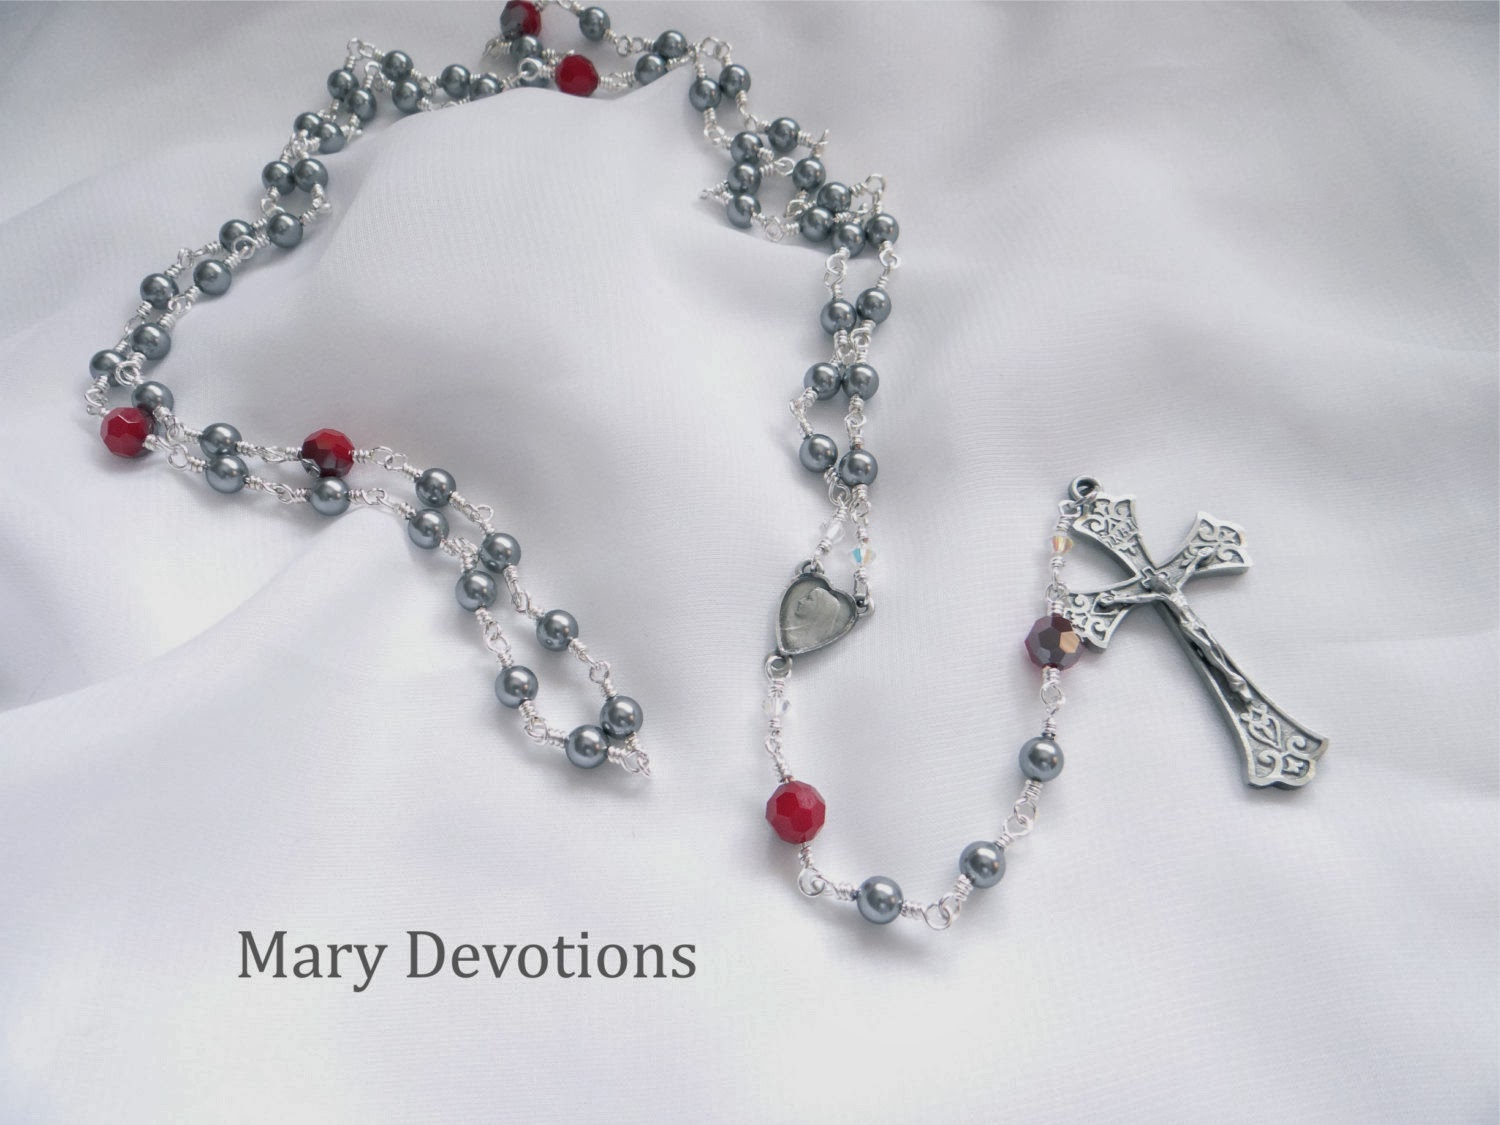 Mary Devotions